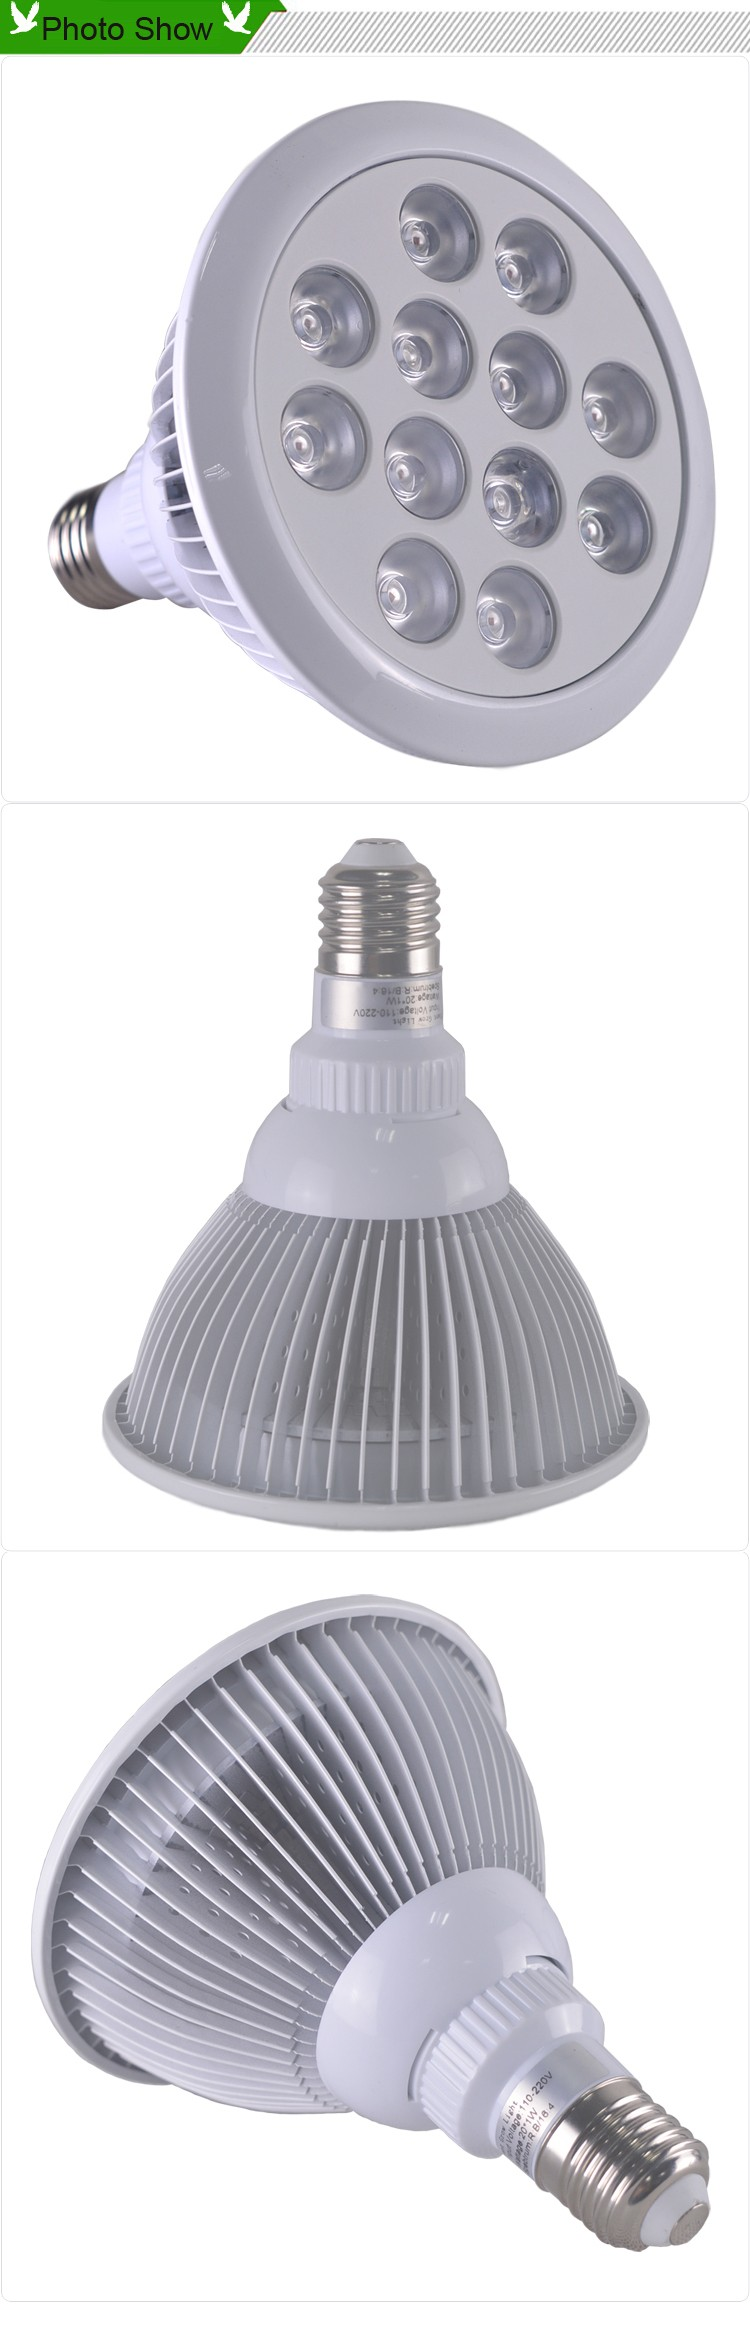 Low Cost Cheap Greenhouse Equipment 36w E27 W26 Led Grow Light Bulb Buy Led Poultry Light